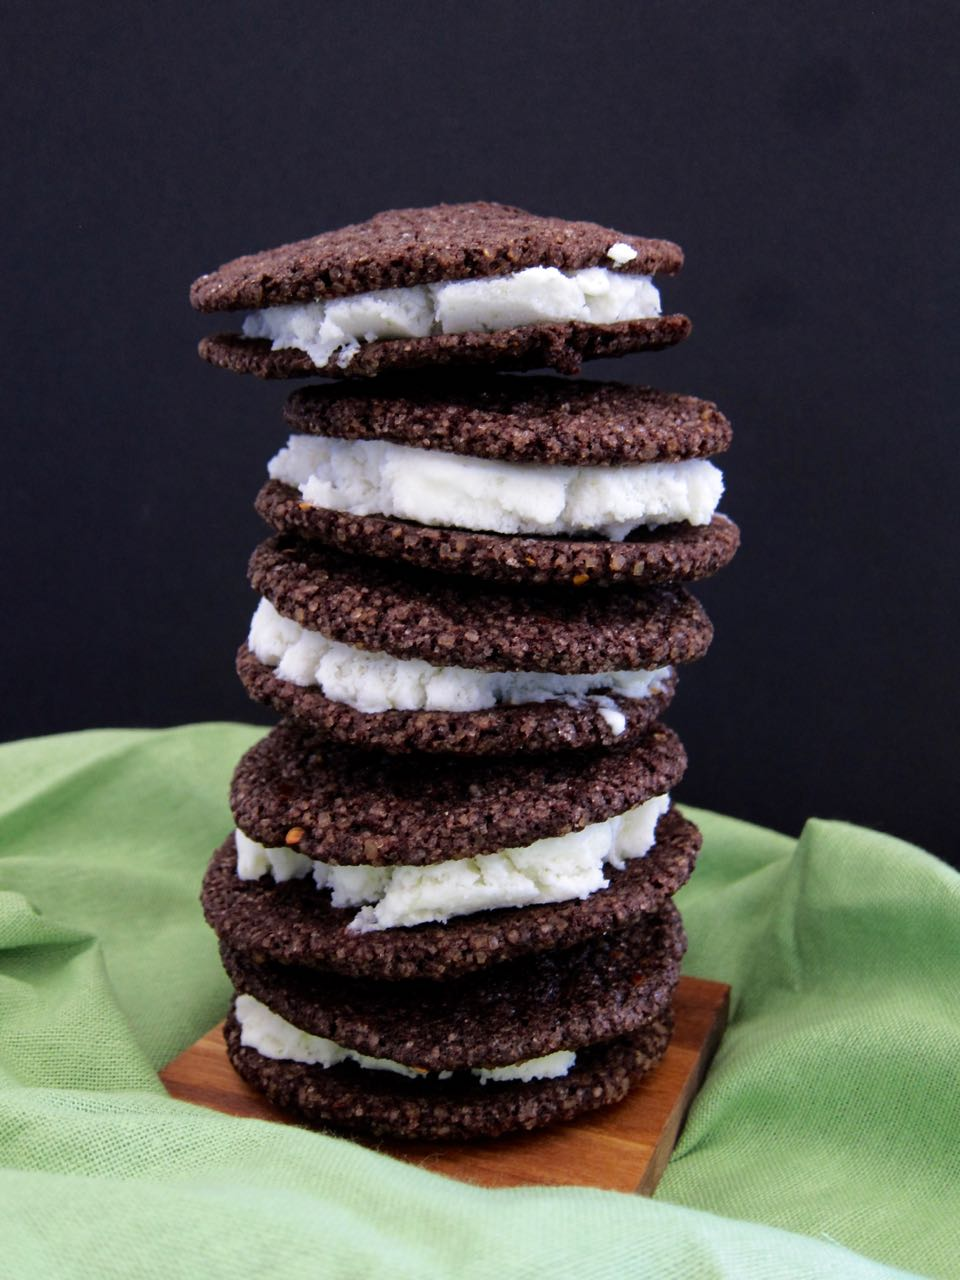 Chocolate Chile Lime Ice Cream Sandwiches